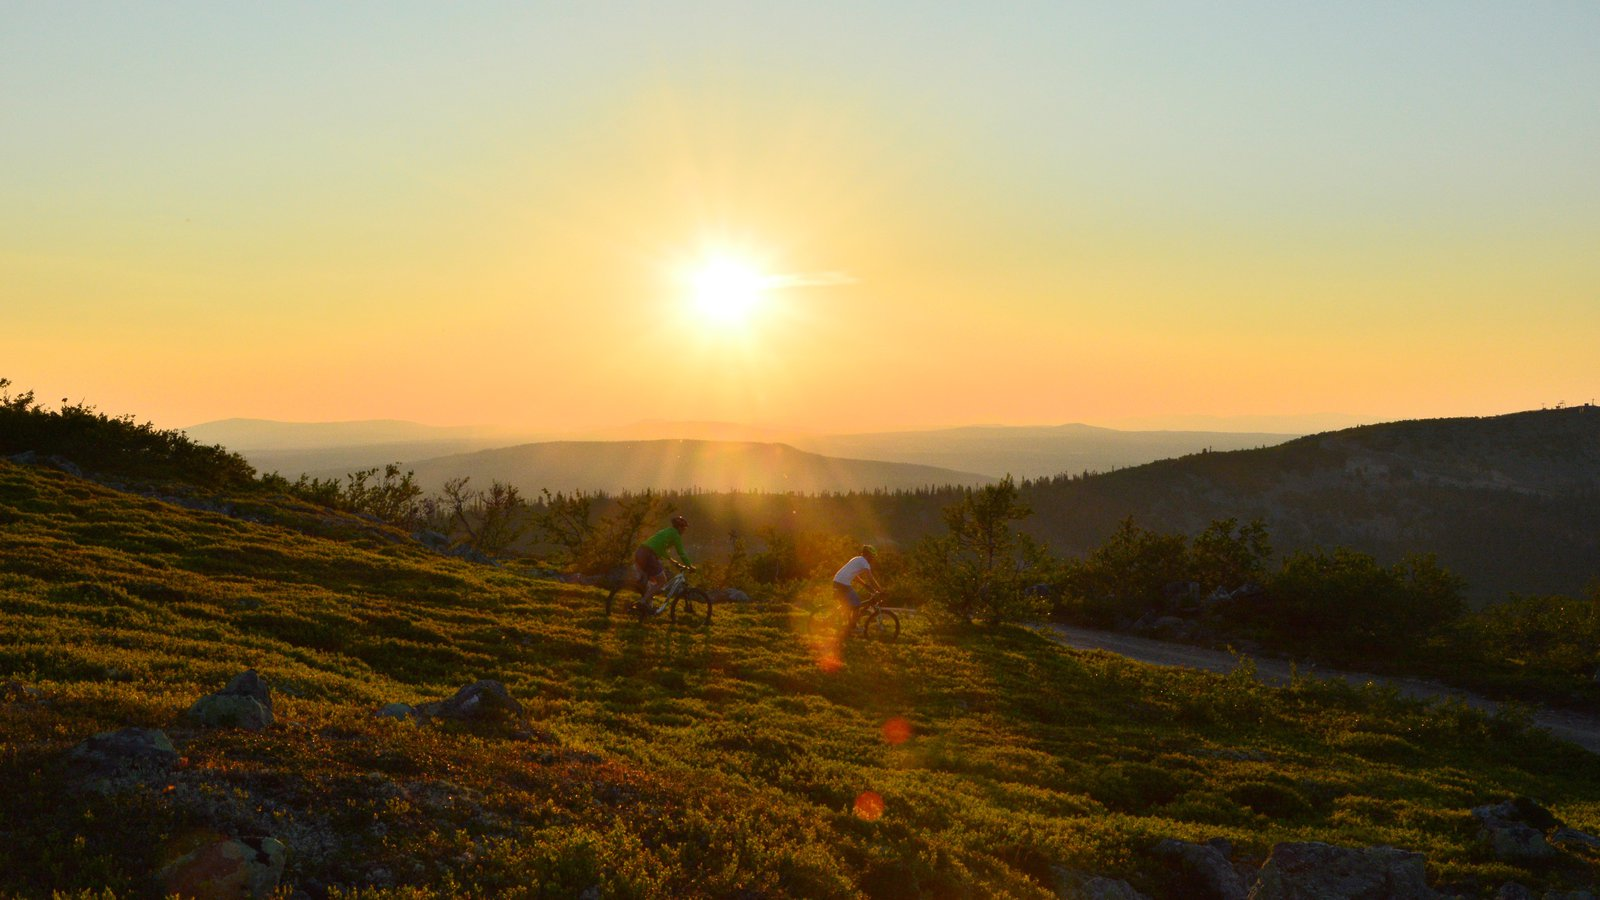 Vemdalen showing a sunset and mountain biking